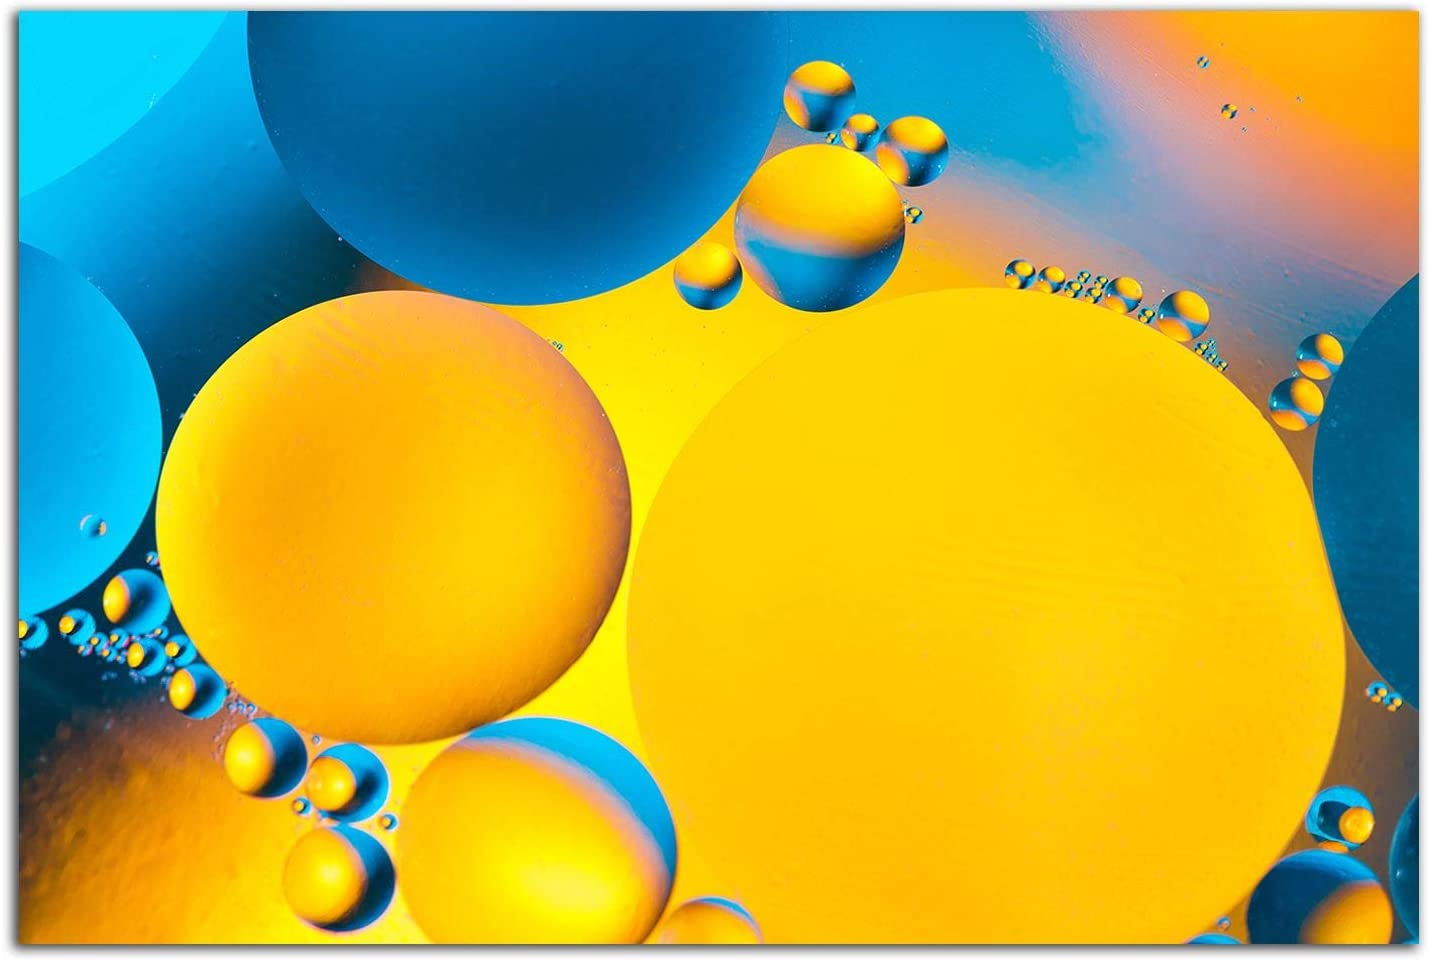 Startonight Glass Wall Art - Yellow and Blue Spheres Decor - Tempered Acrylic Glass Artwork 24 x 36 Inches